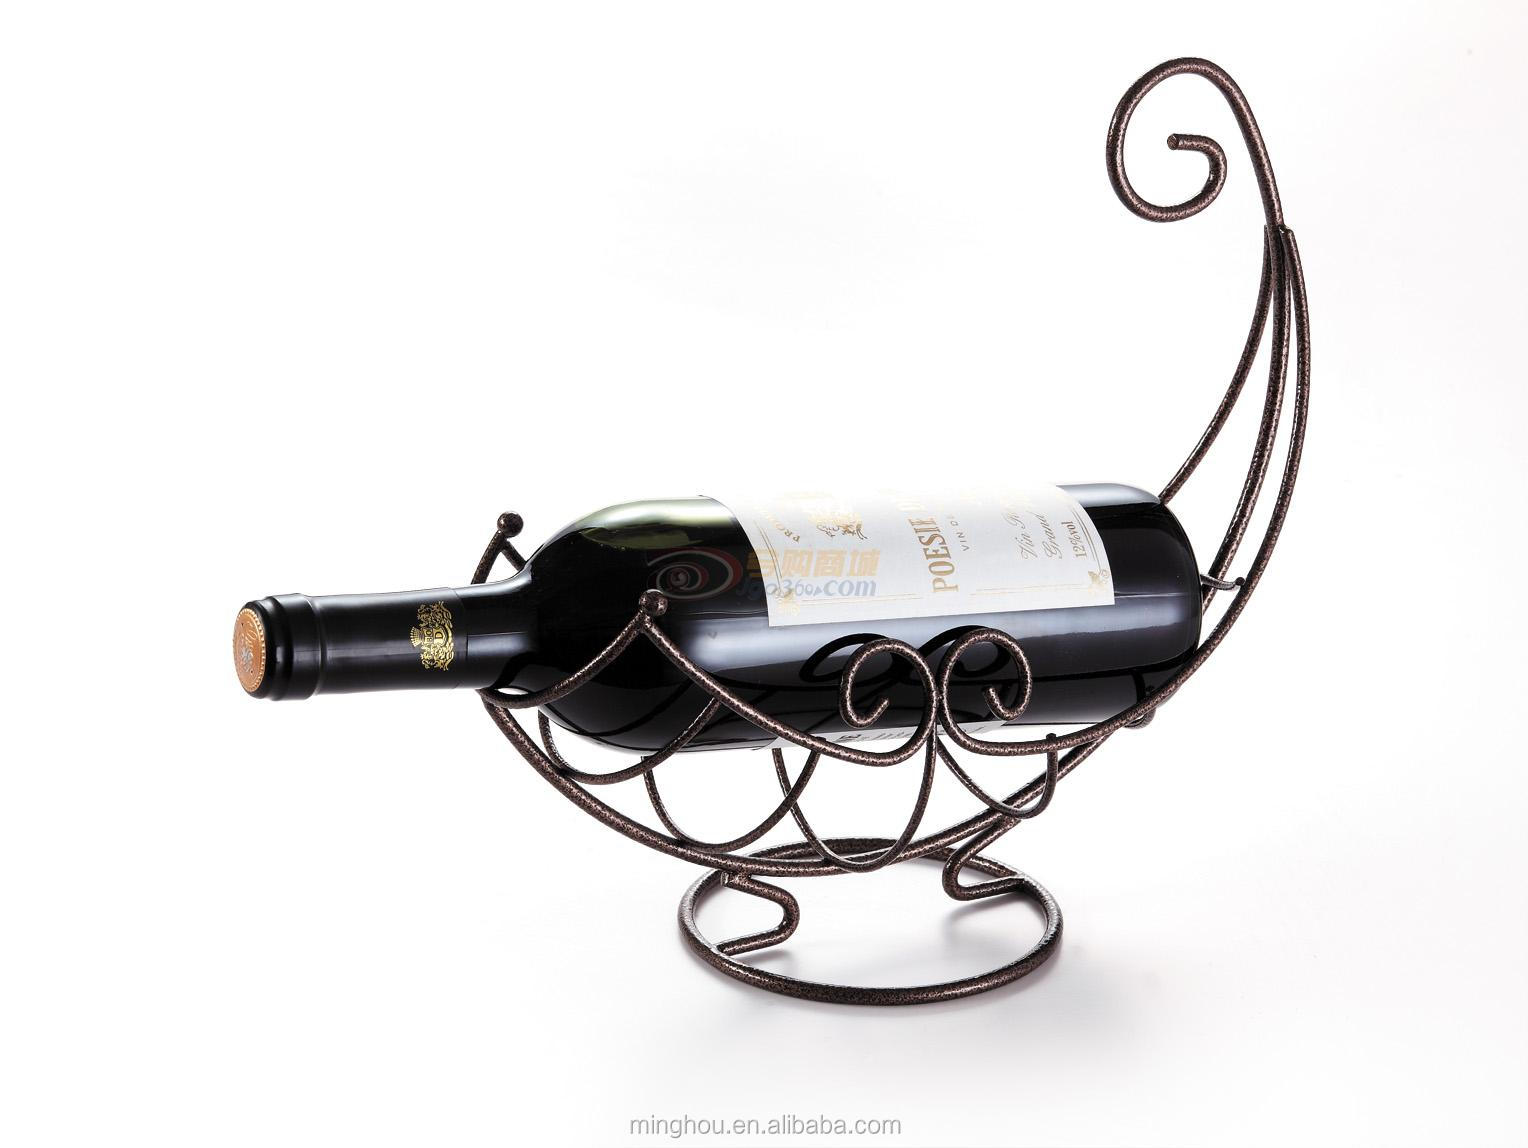 Decorative Metal Wine Racks Unique Nest Metal Wine Bottle Holder Boat Shape Wine Rack Buy Metal Crafts Wine Bottle Holder Metal Single Wine Bottle Holder Antique Decorative